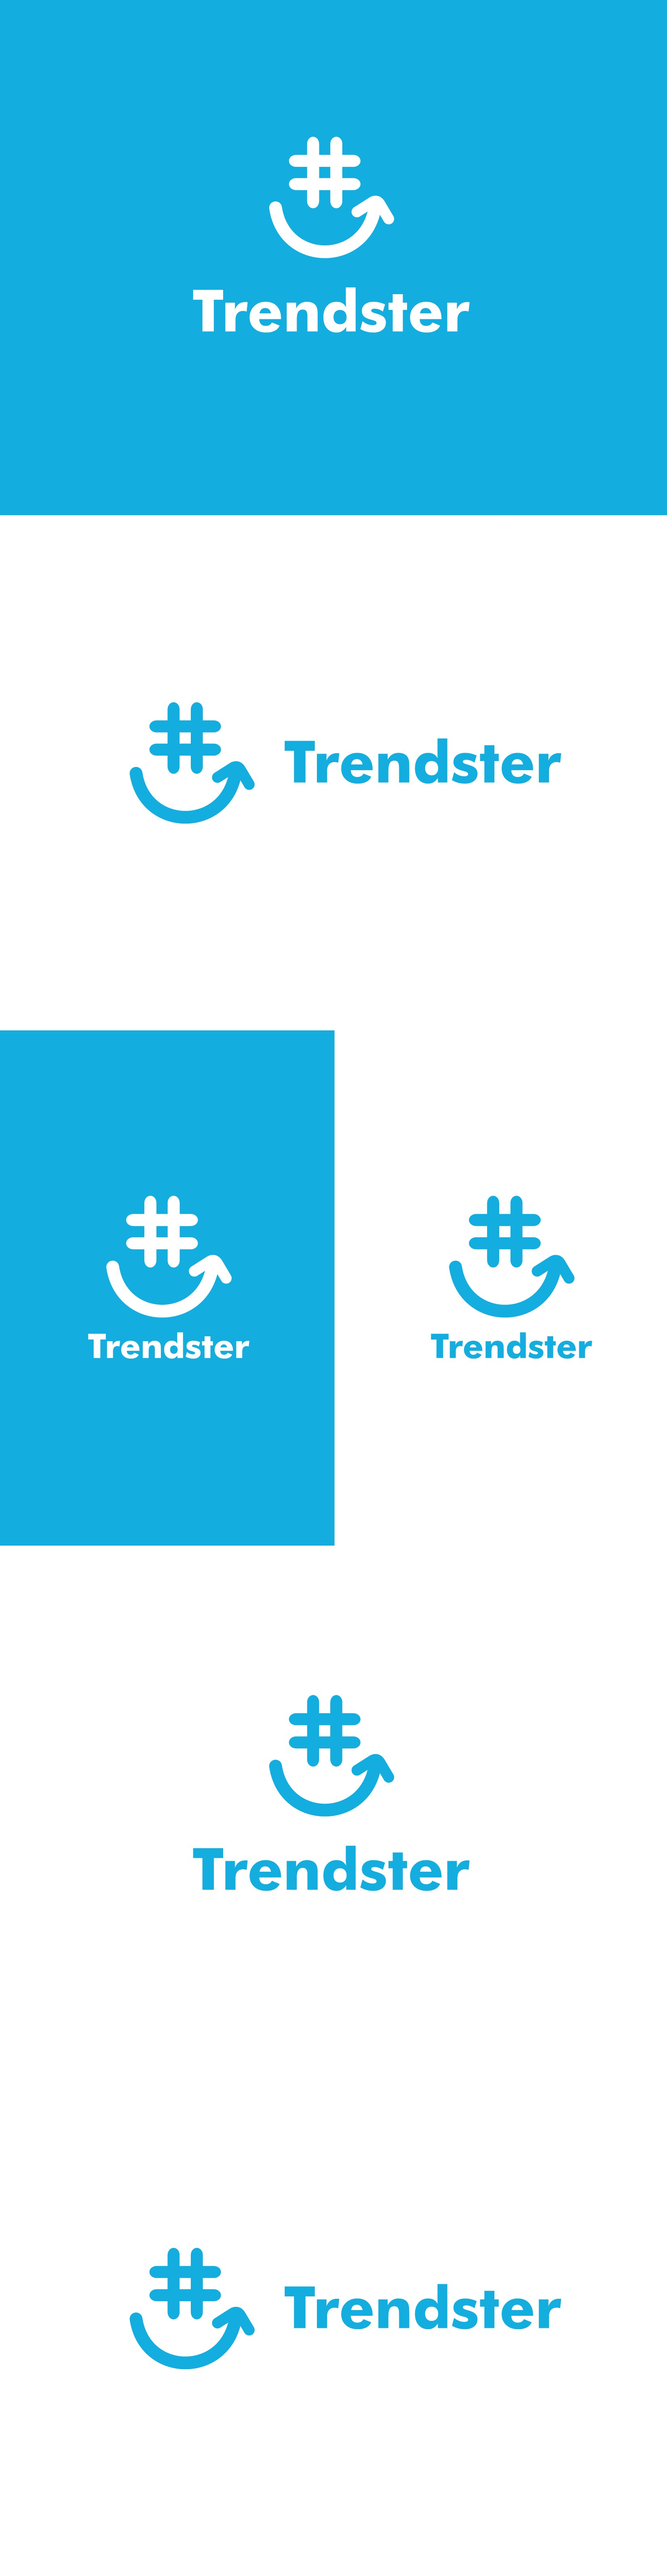 TRENDSTER - The marketplace for social influencers and trending brands they would like to work with.